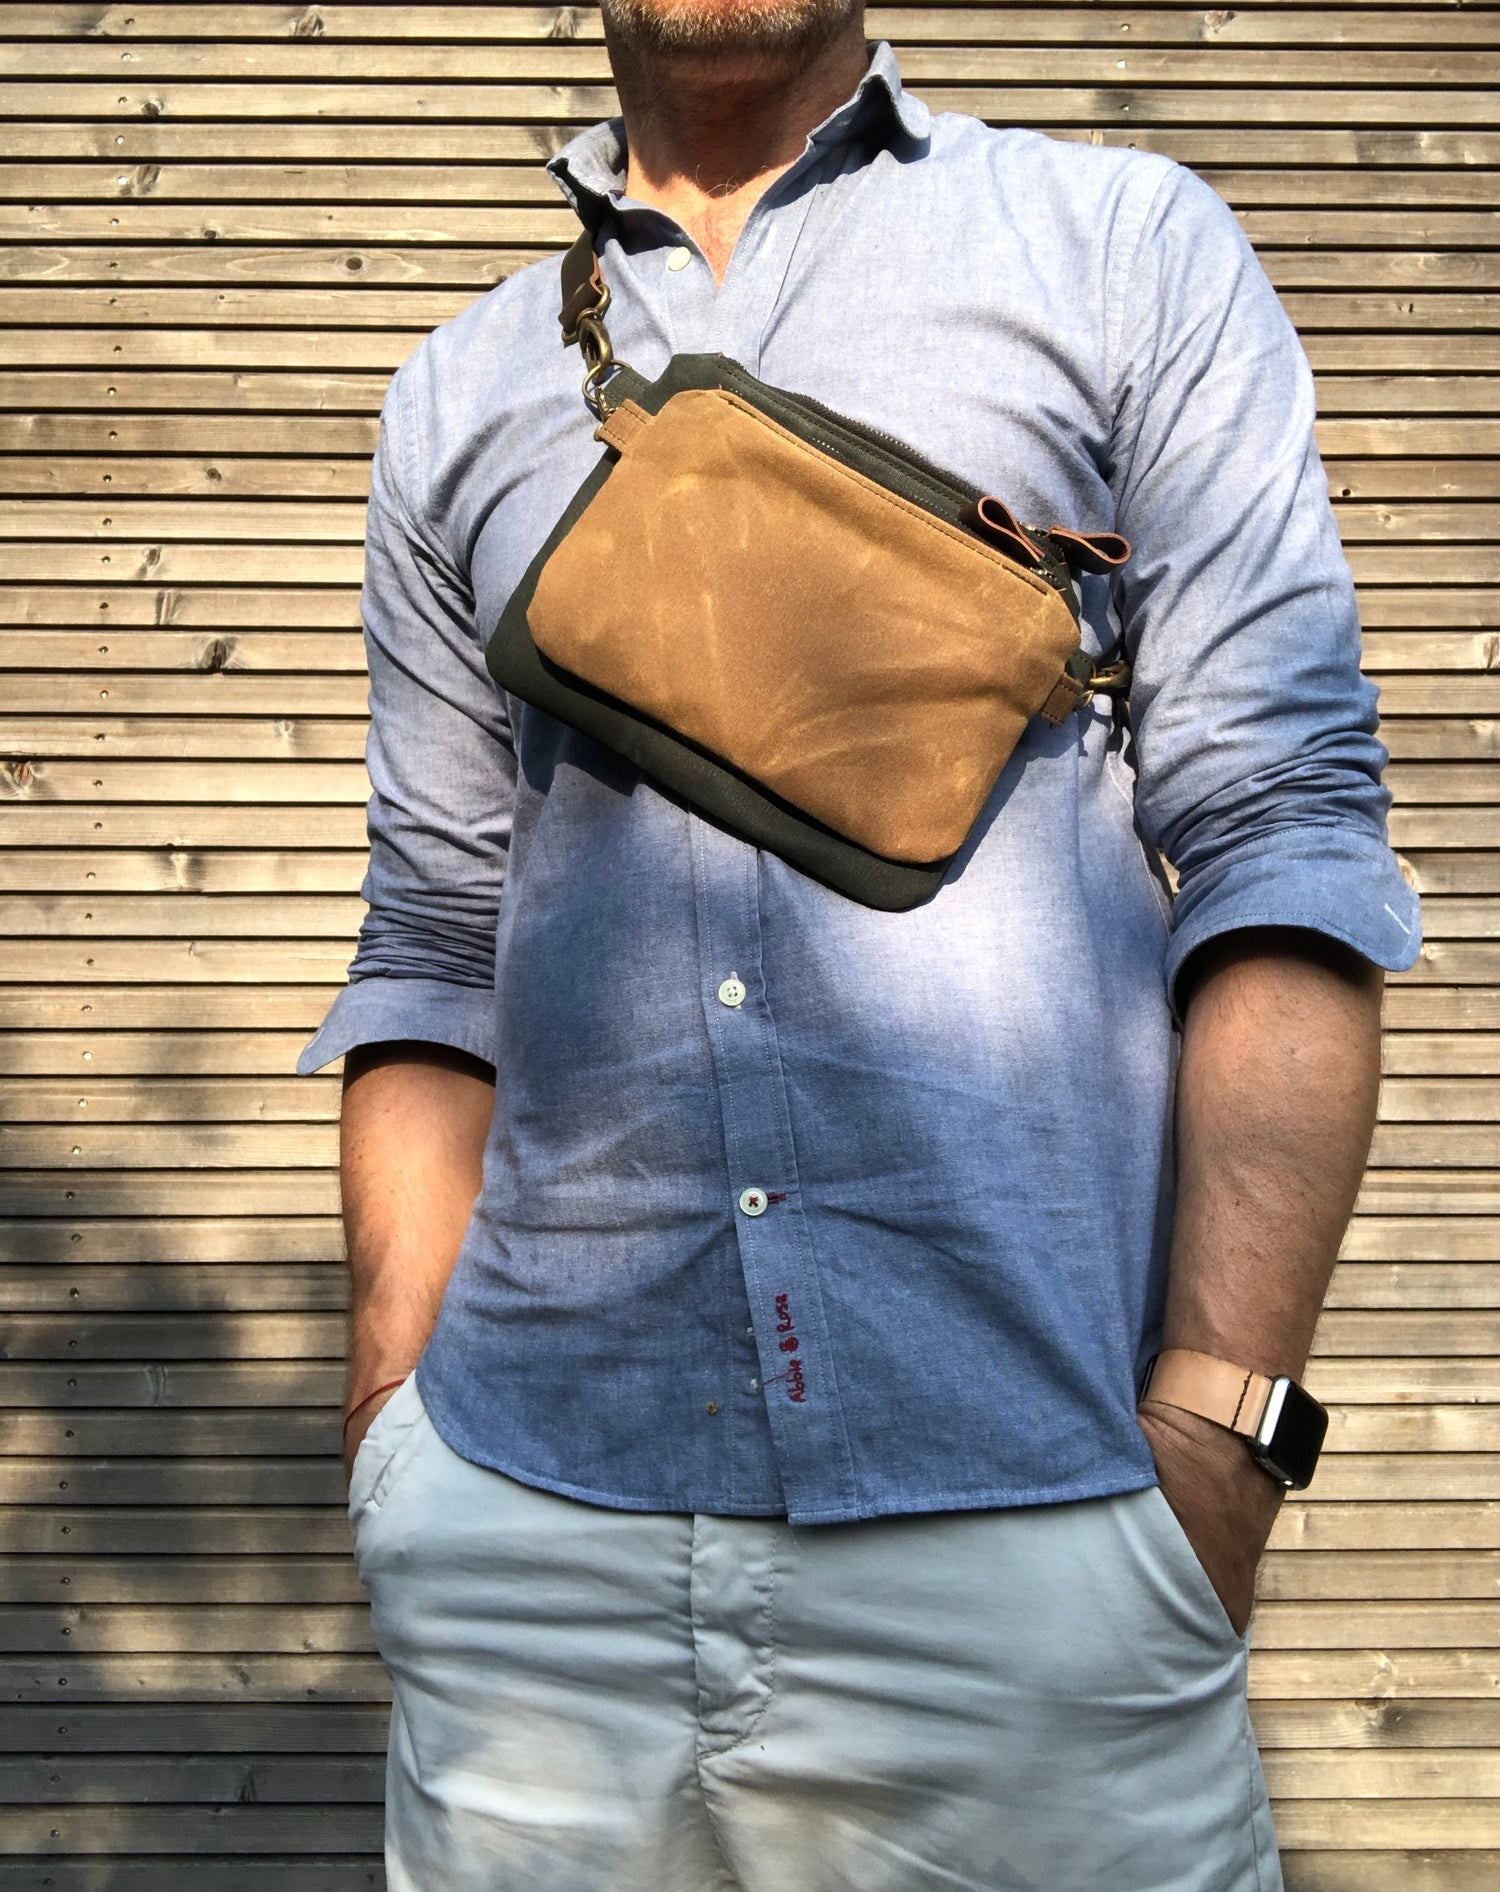 Image of Waxed canvas fanny pack / belt bag / small messenger bag/ kangaroo bag with leather shoulder strap